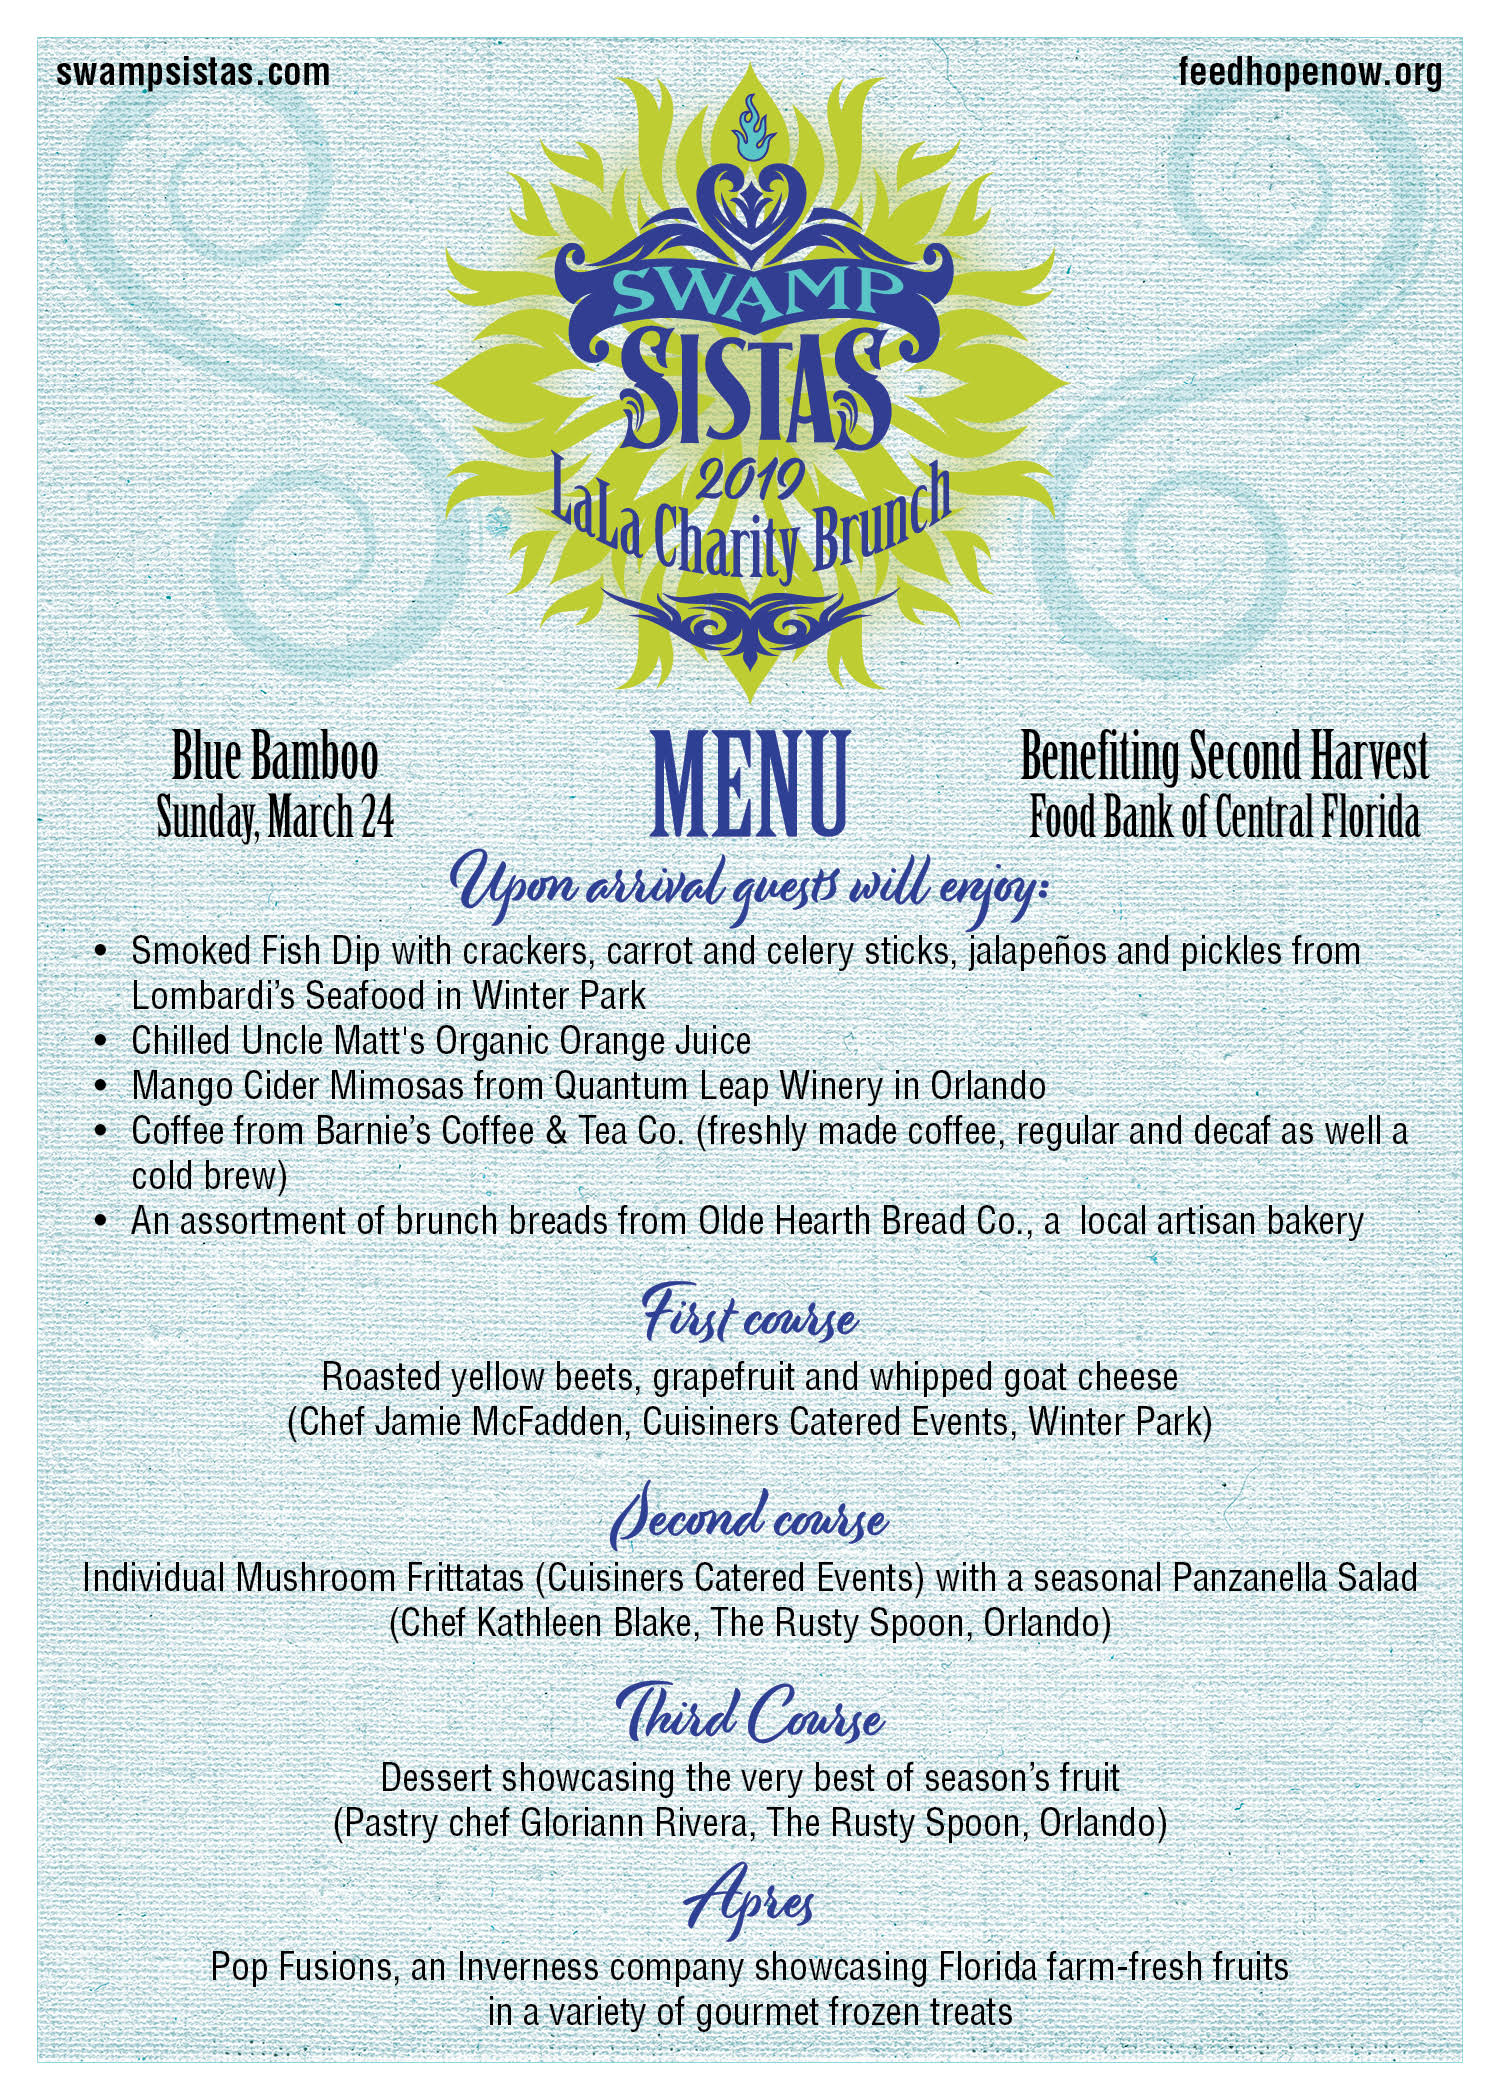 Local Chefs Team Up to Help Others via the Swamp Sisters La La Charity Brunch menu.jpg